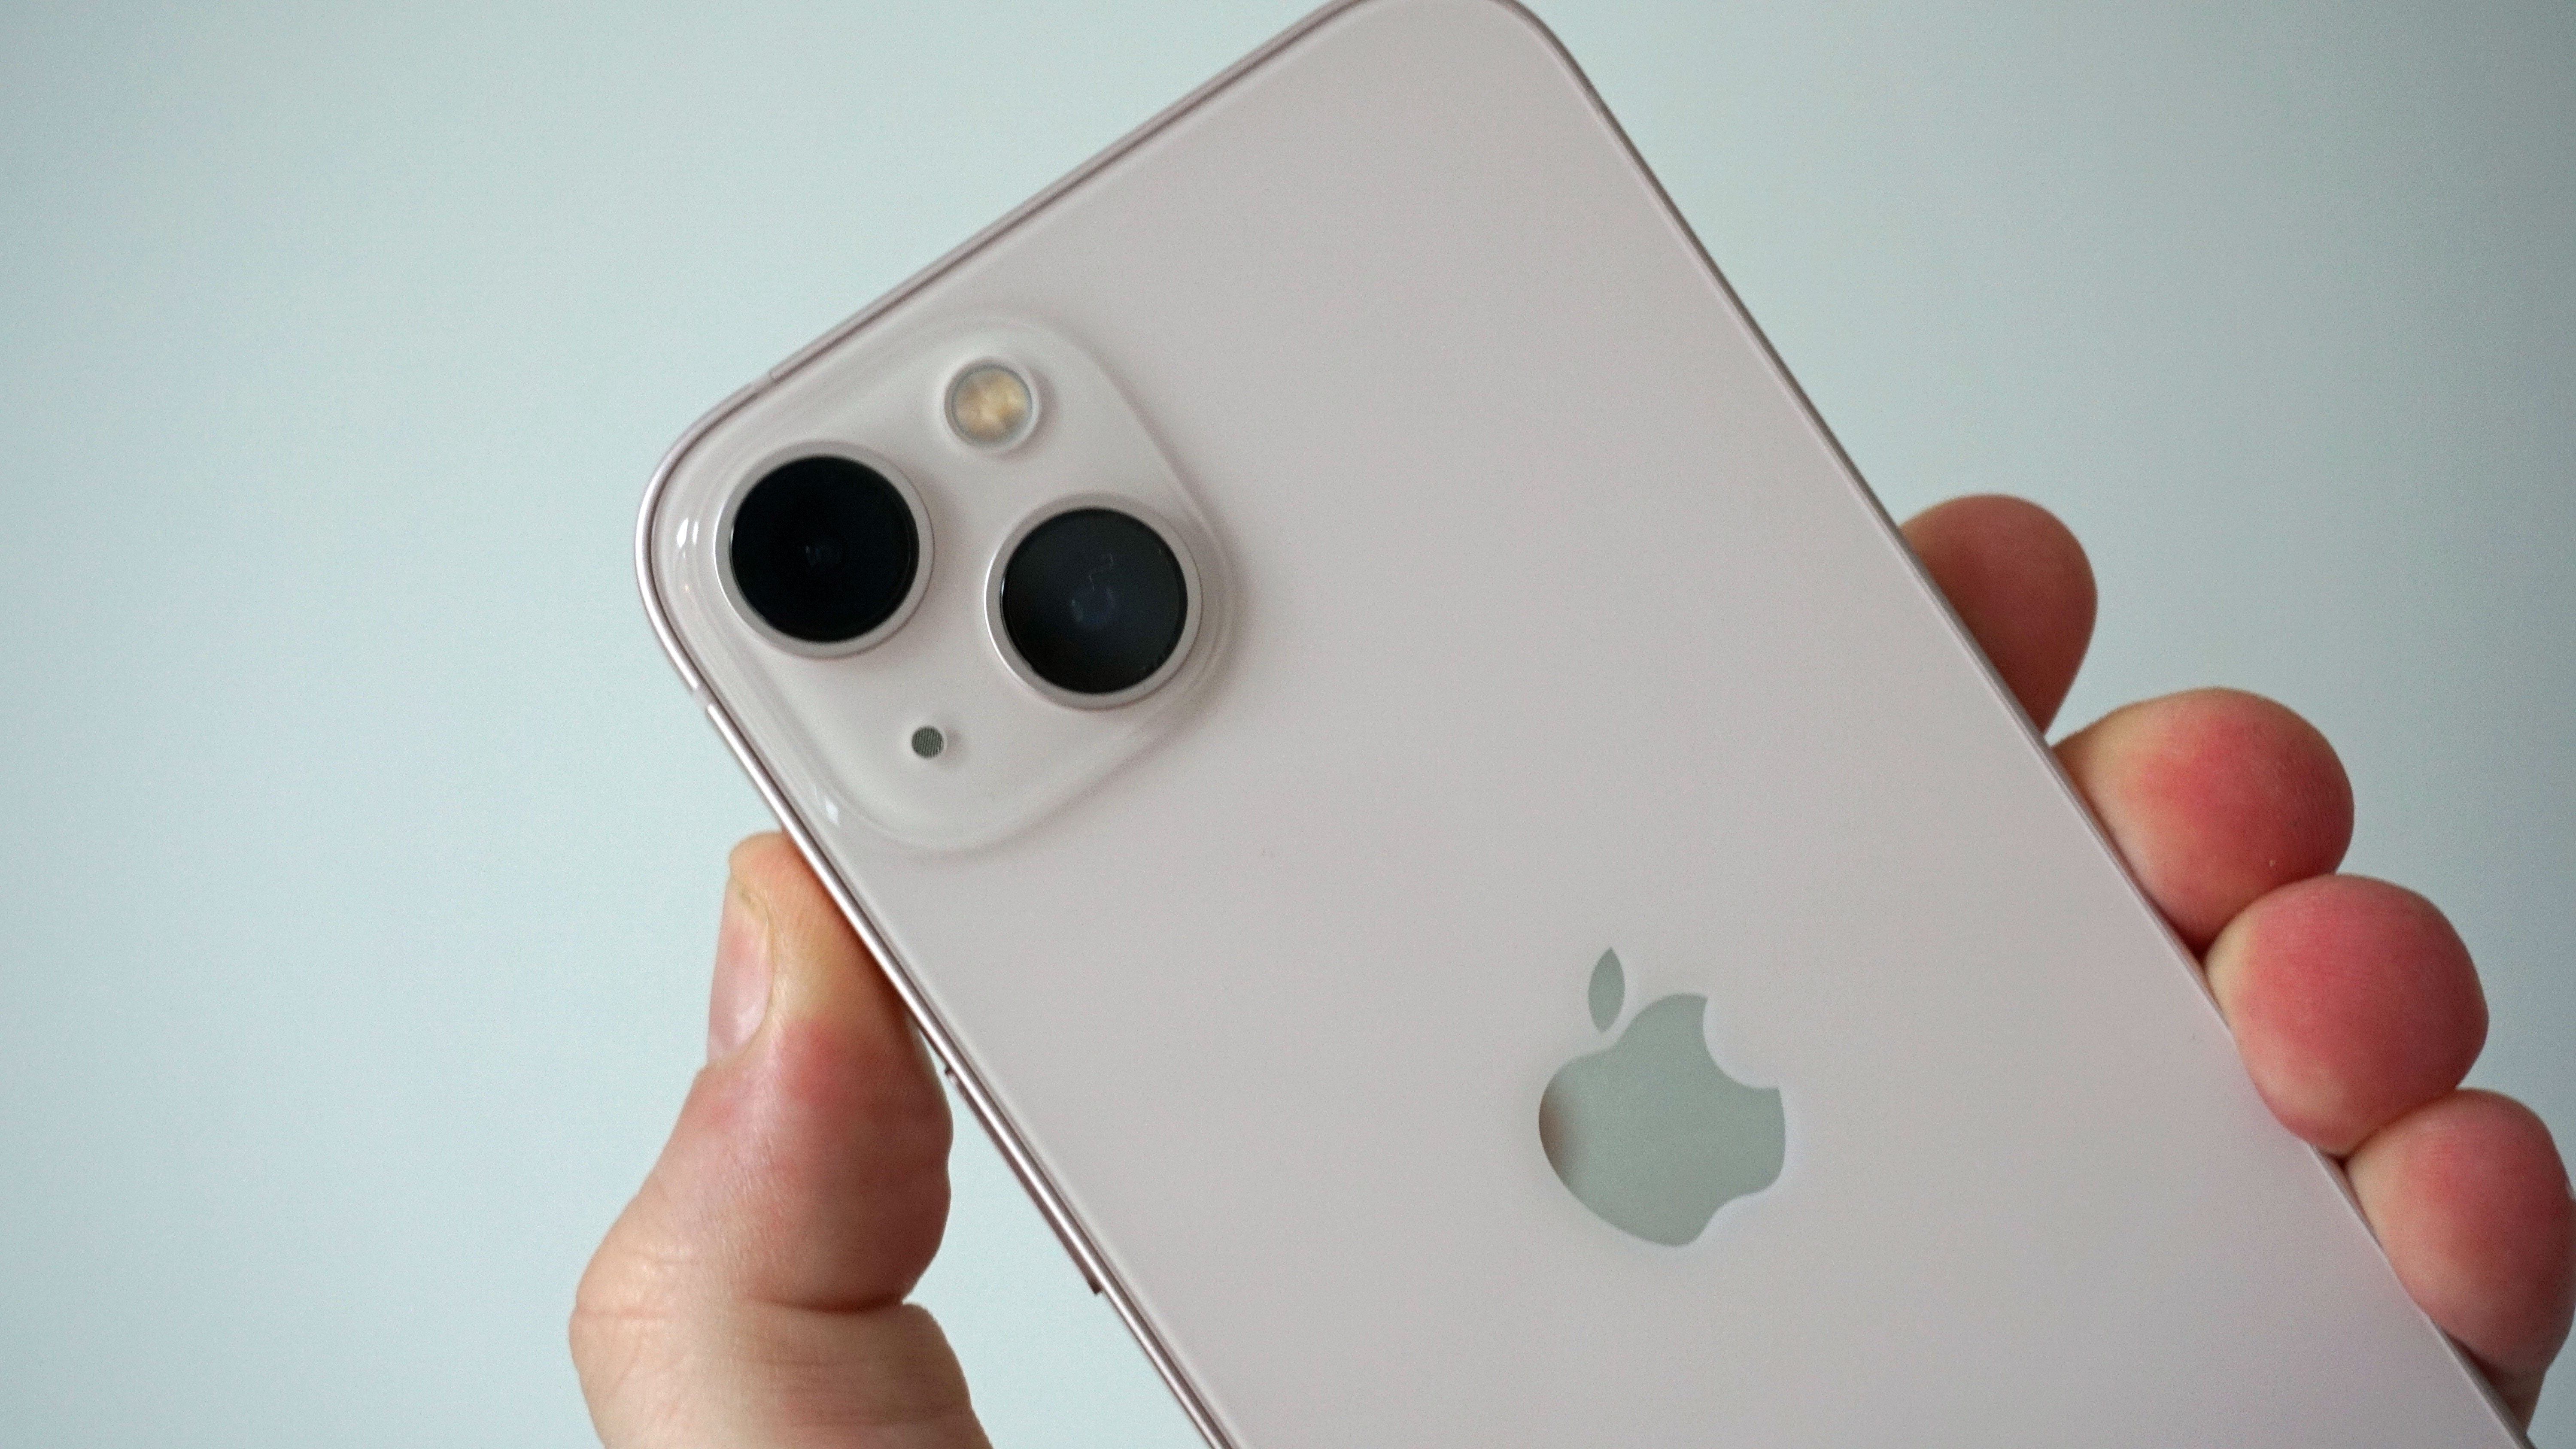 iPhone 14 tipped to arrive with a 'complete redesign' next year thumbnail